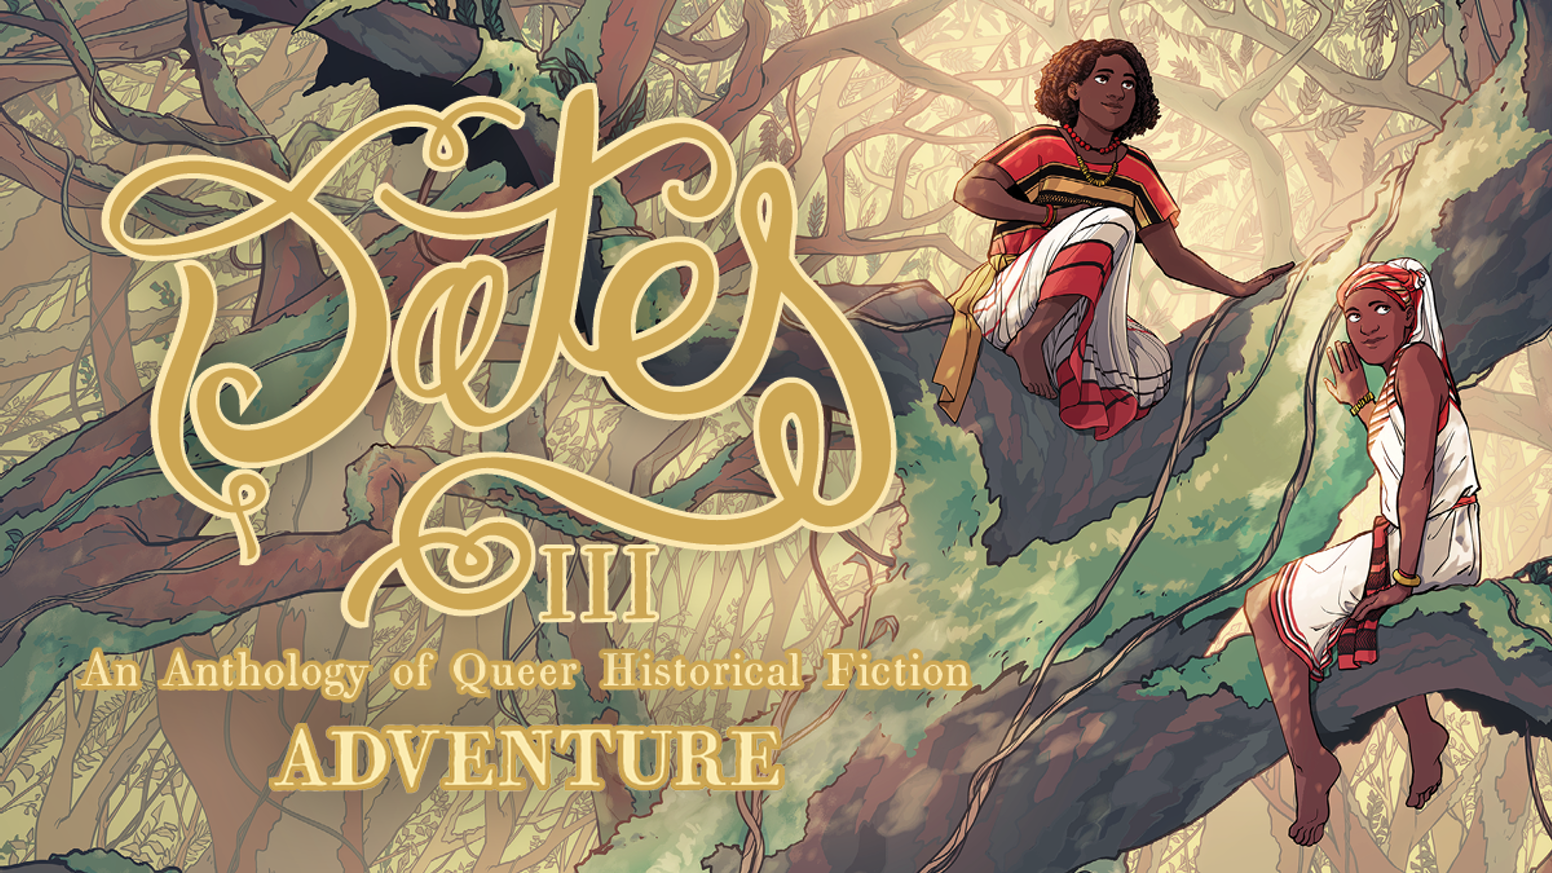 Dates is an anthology of positive queer historical fiction, set throughout time and across the world. This is Volume 3: ADVENTURE!